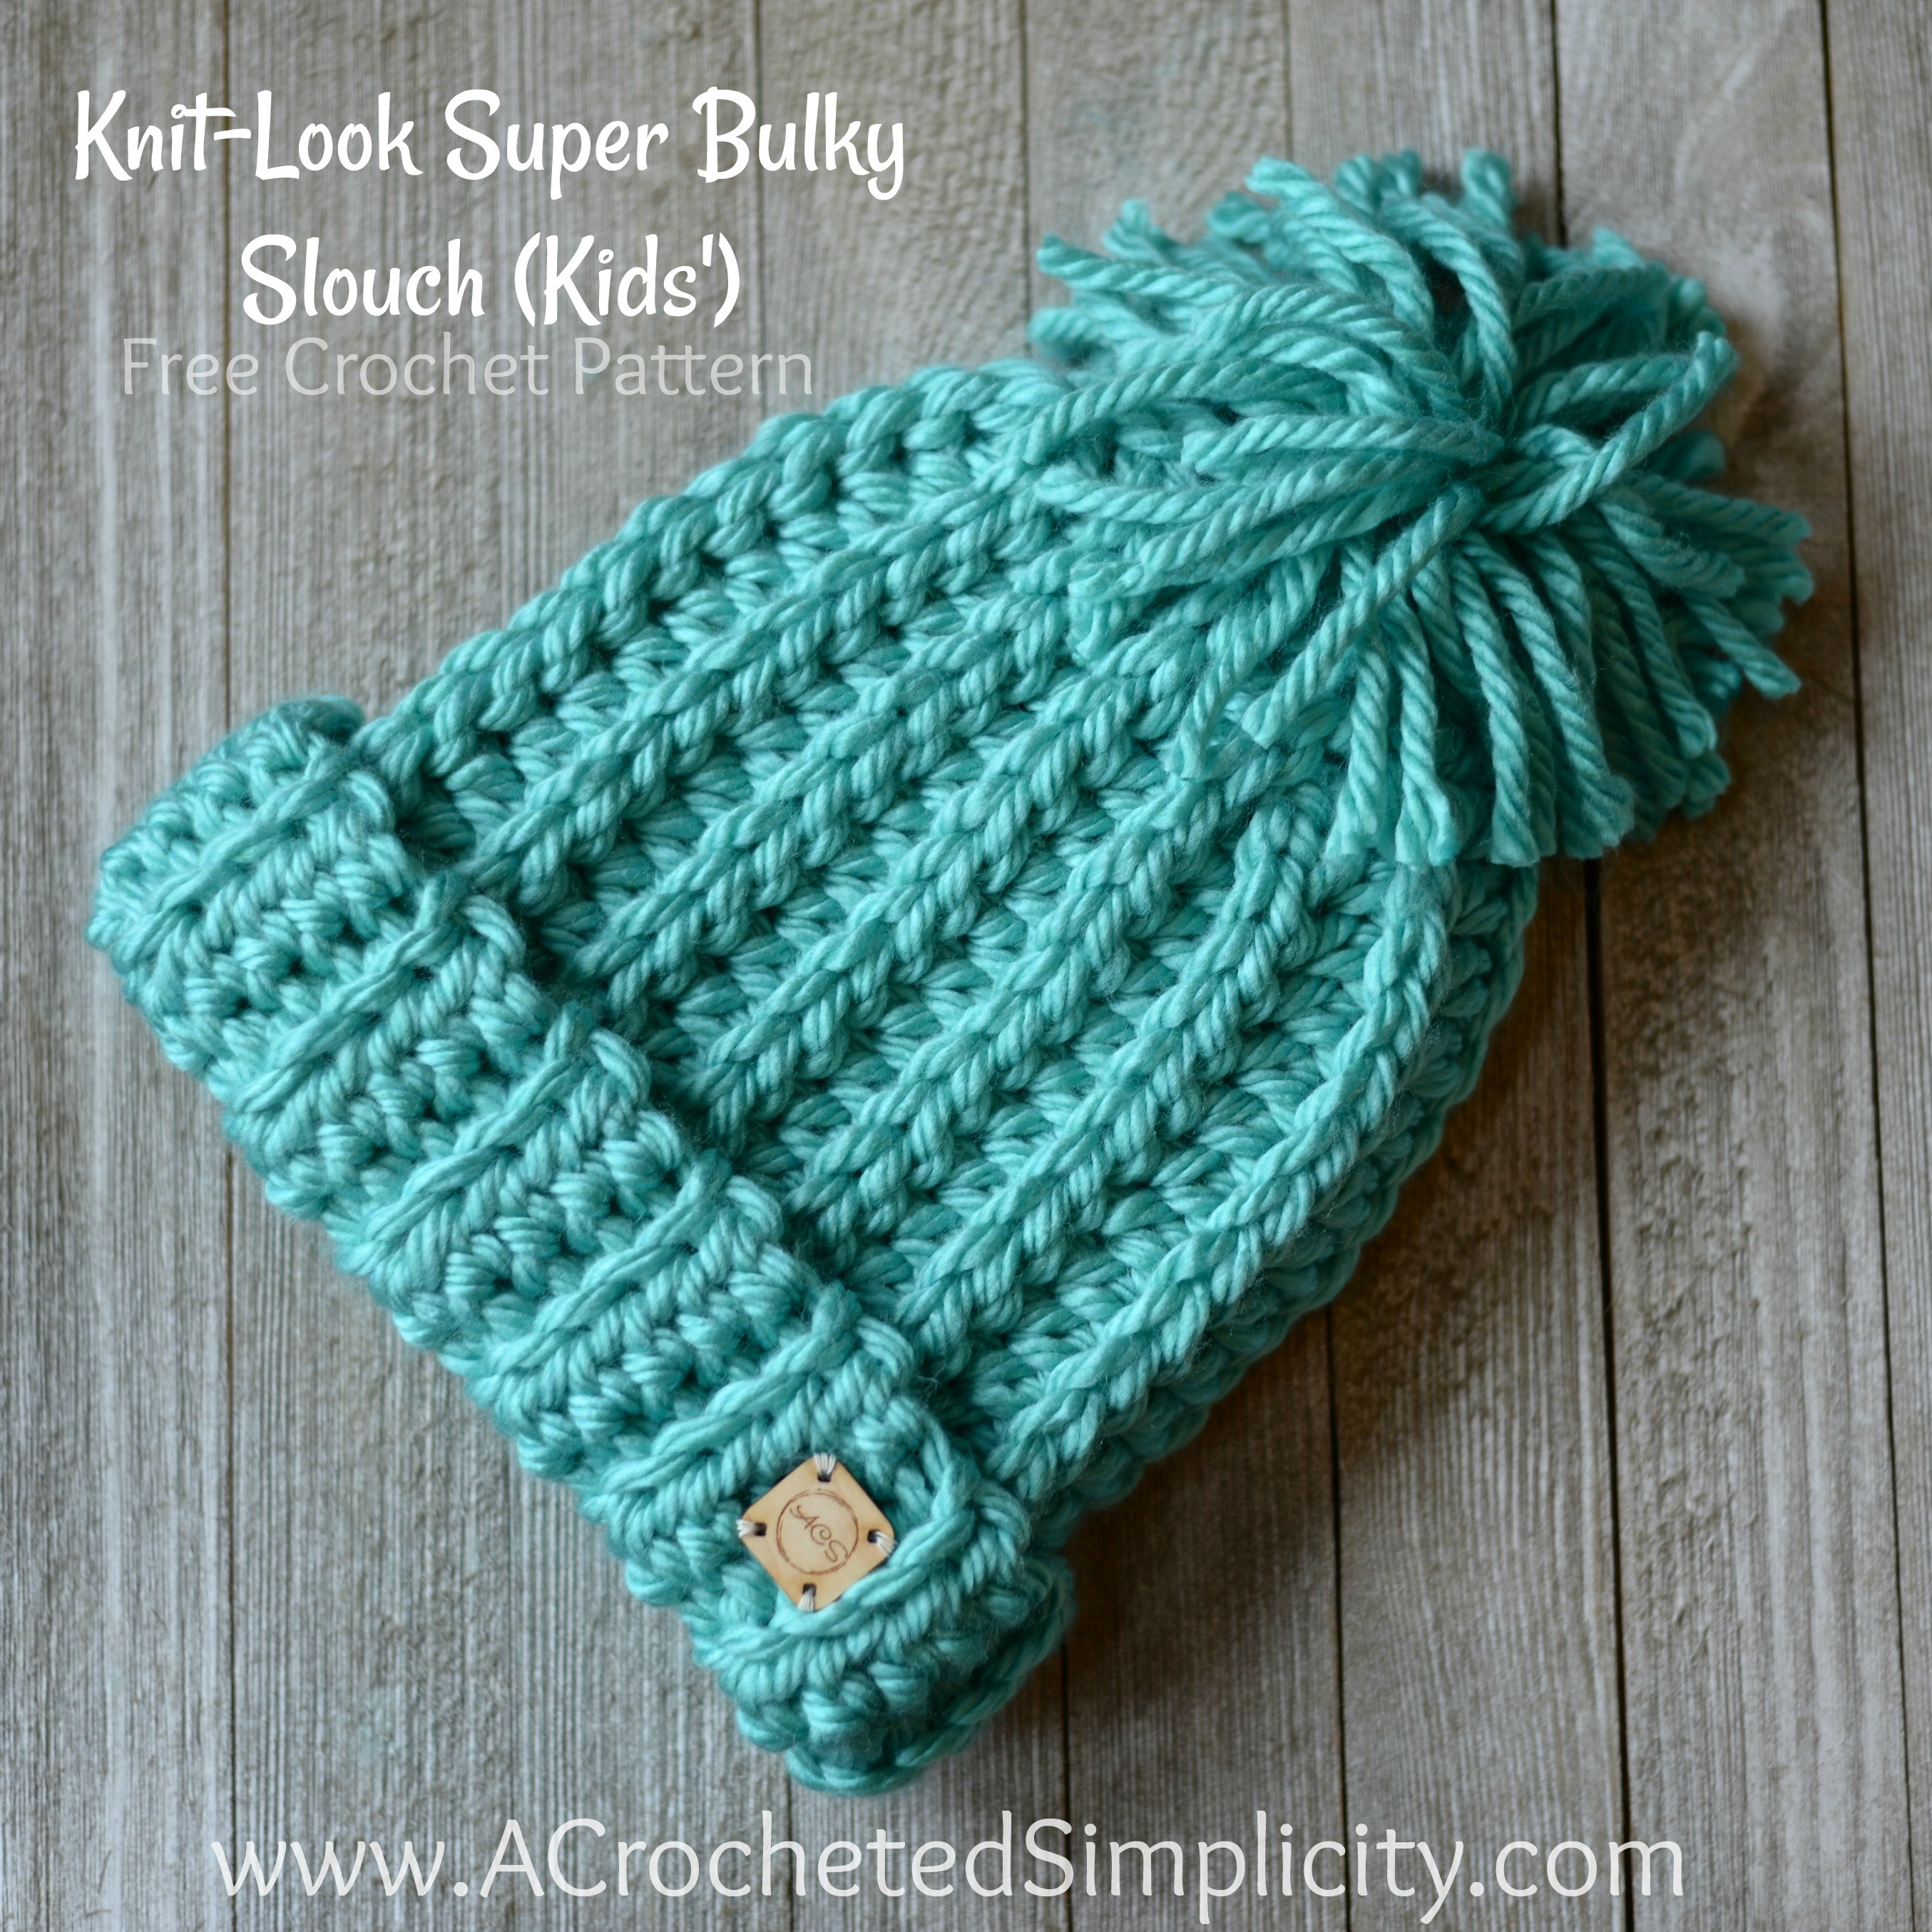 Inspirational Free Crochet Pattern Knit Look Super Bulky Slouch Kids Free Crochet Patterns for Bulky Yarn Of Beautiful 46 Photos Free Crochet Patterns for Bulky Yarn